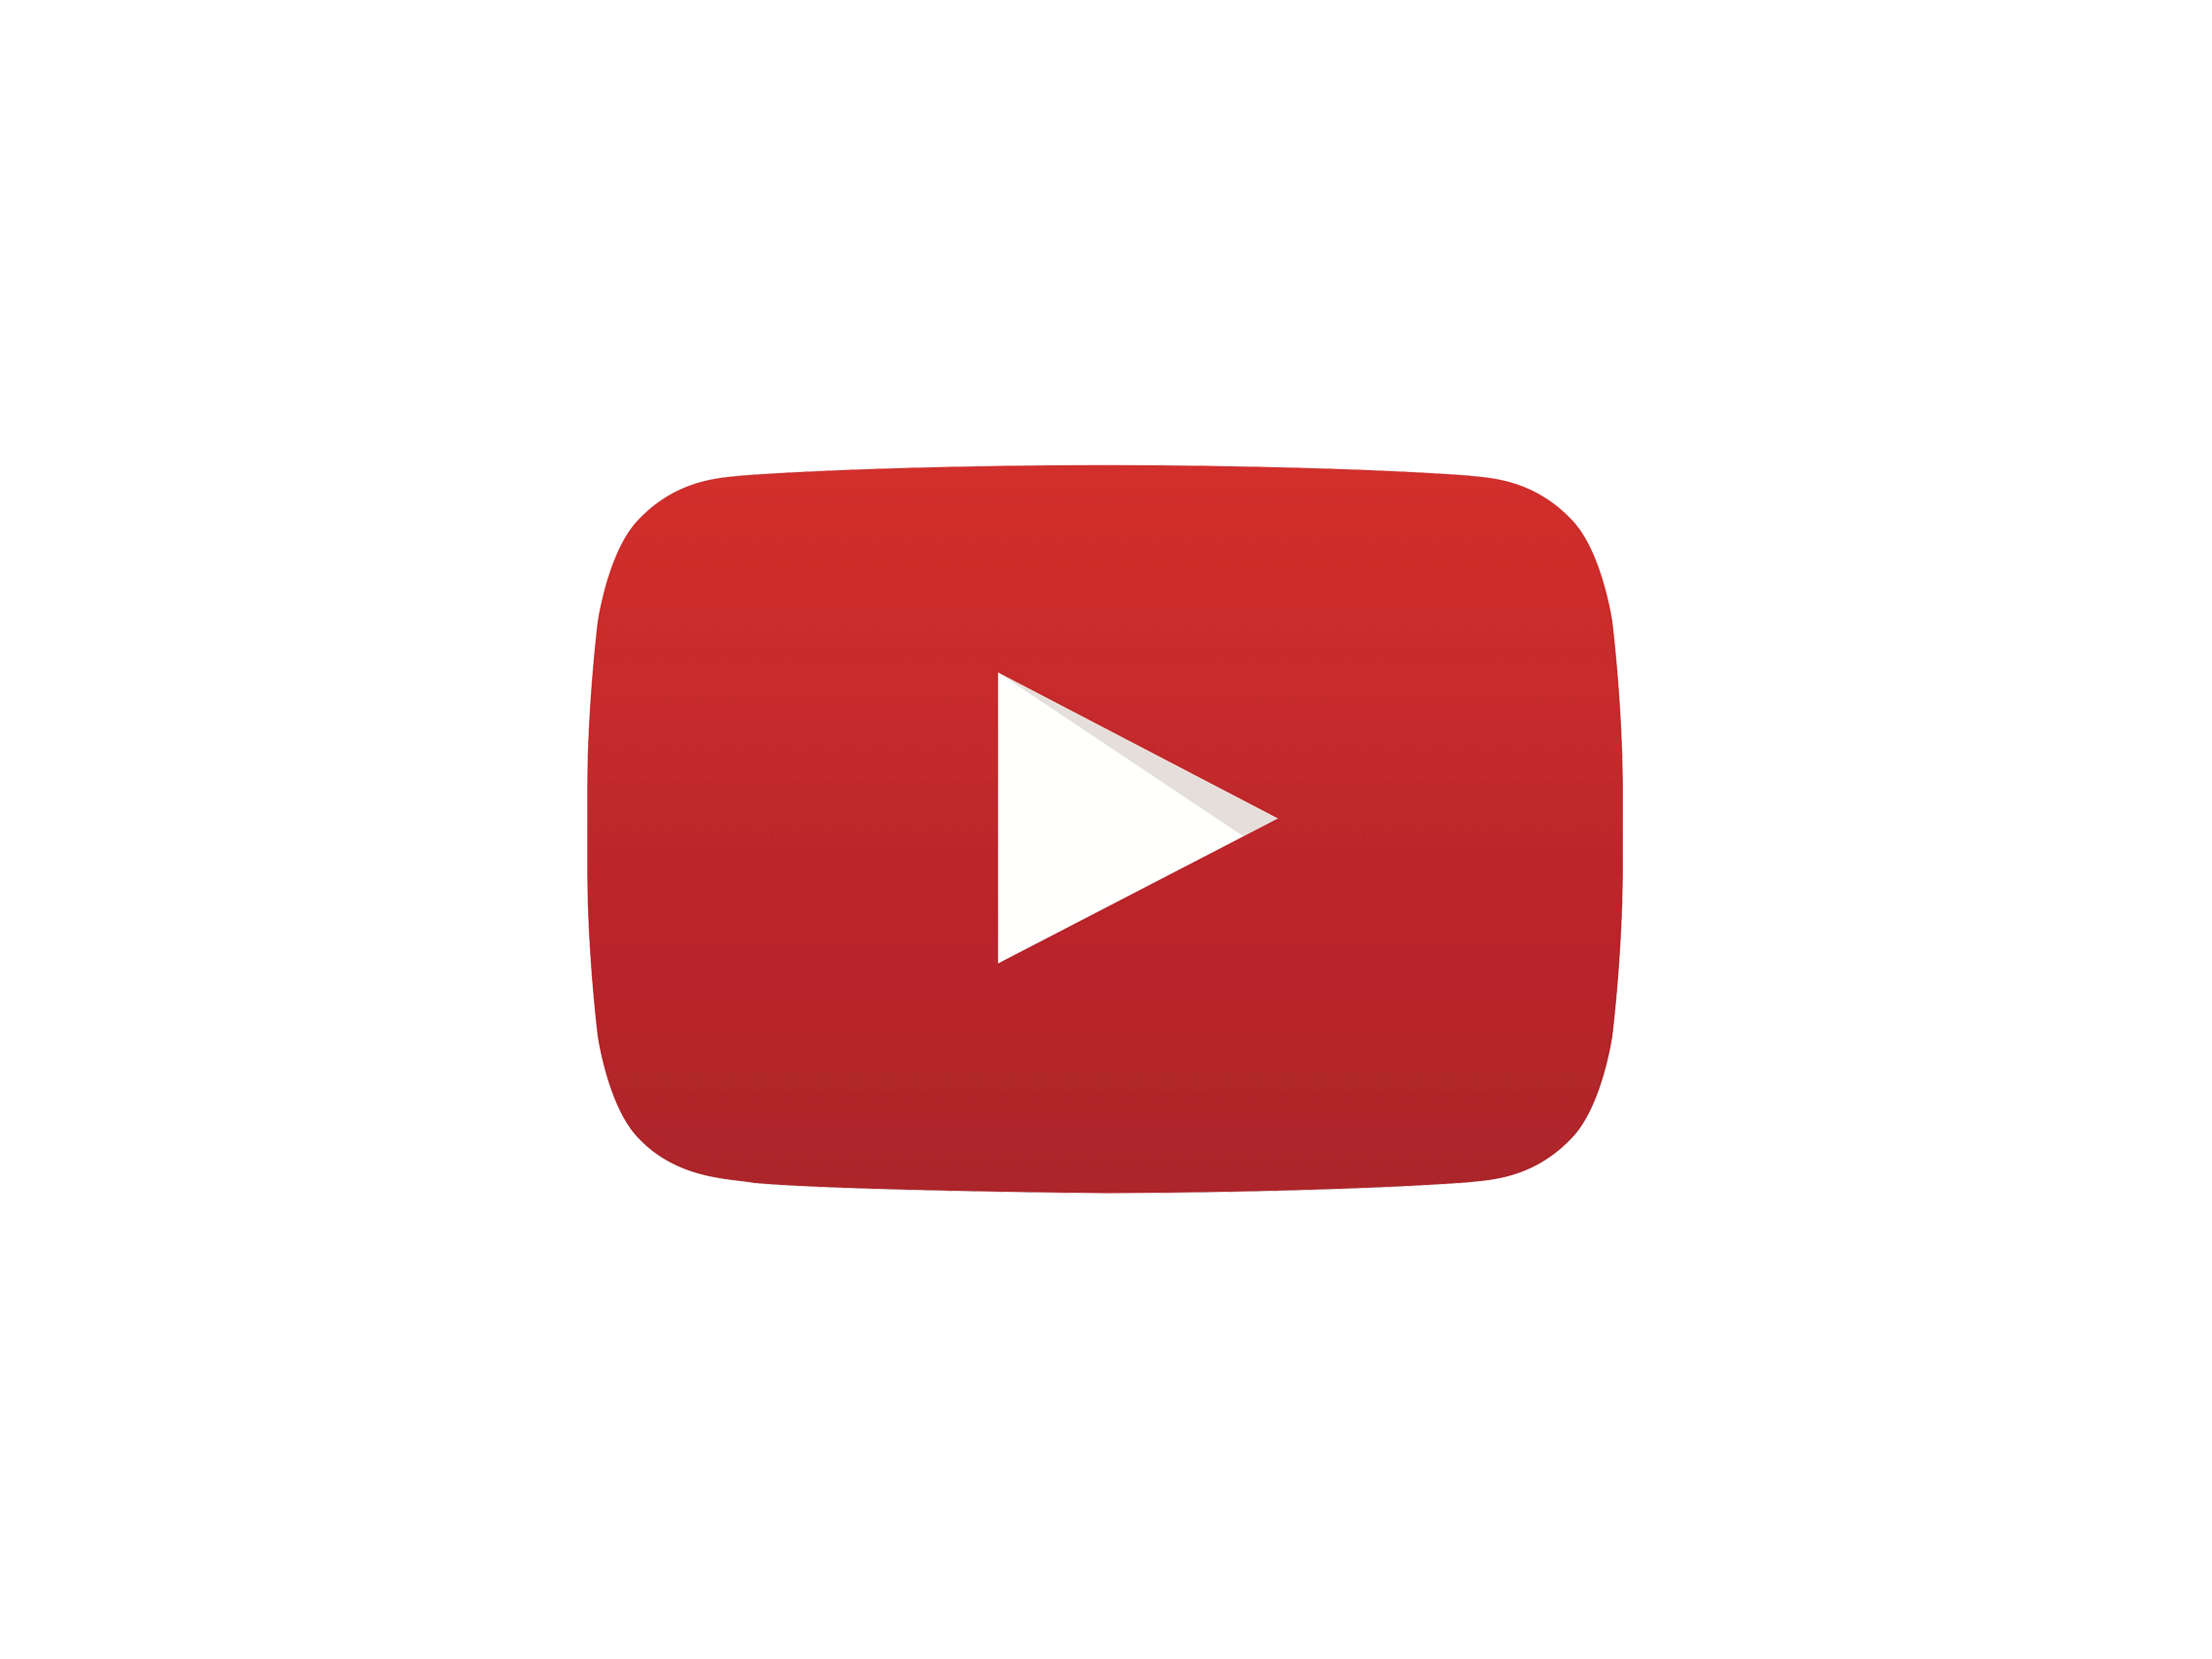 Youtube HD PNG - 93468